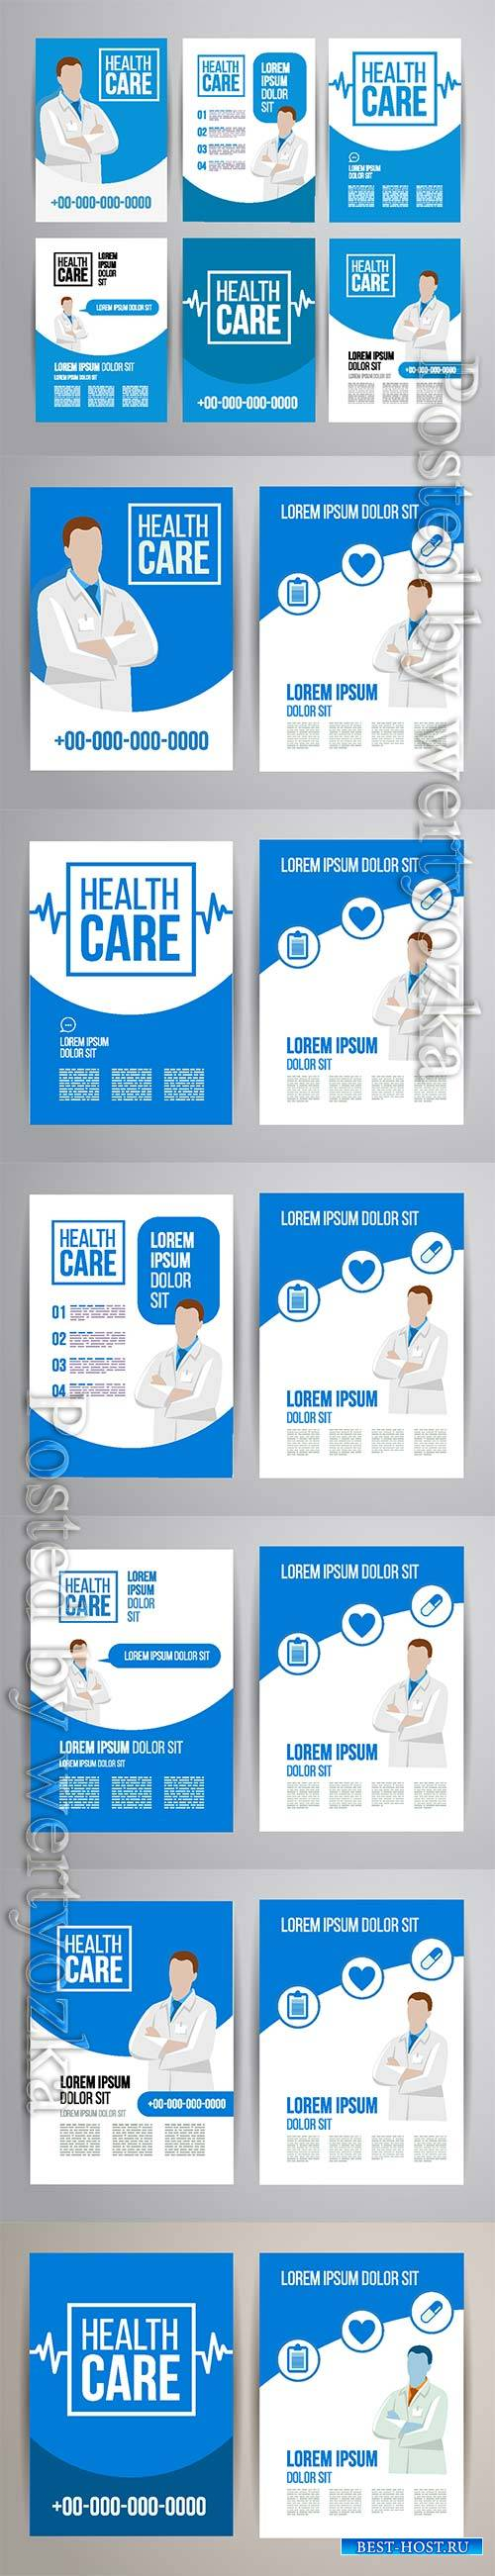 Healthcare brochure concept, clinic flyer design with doctor and medical ic ...